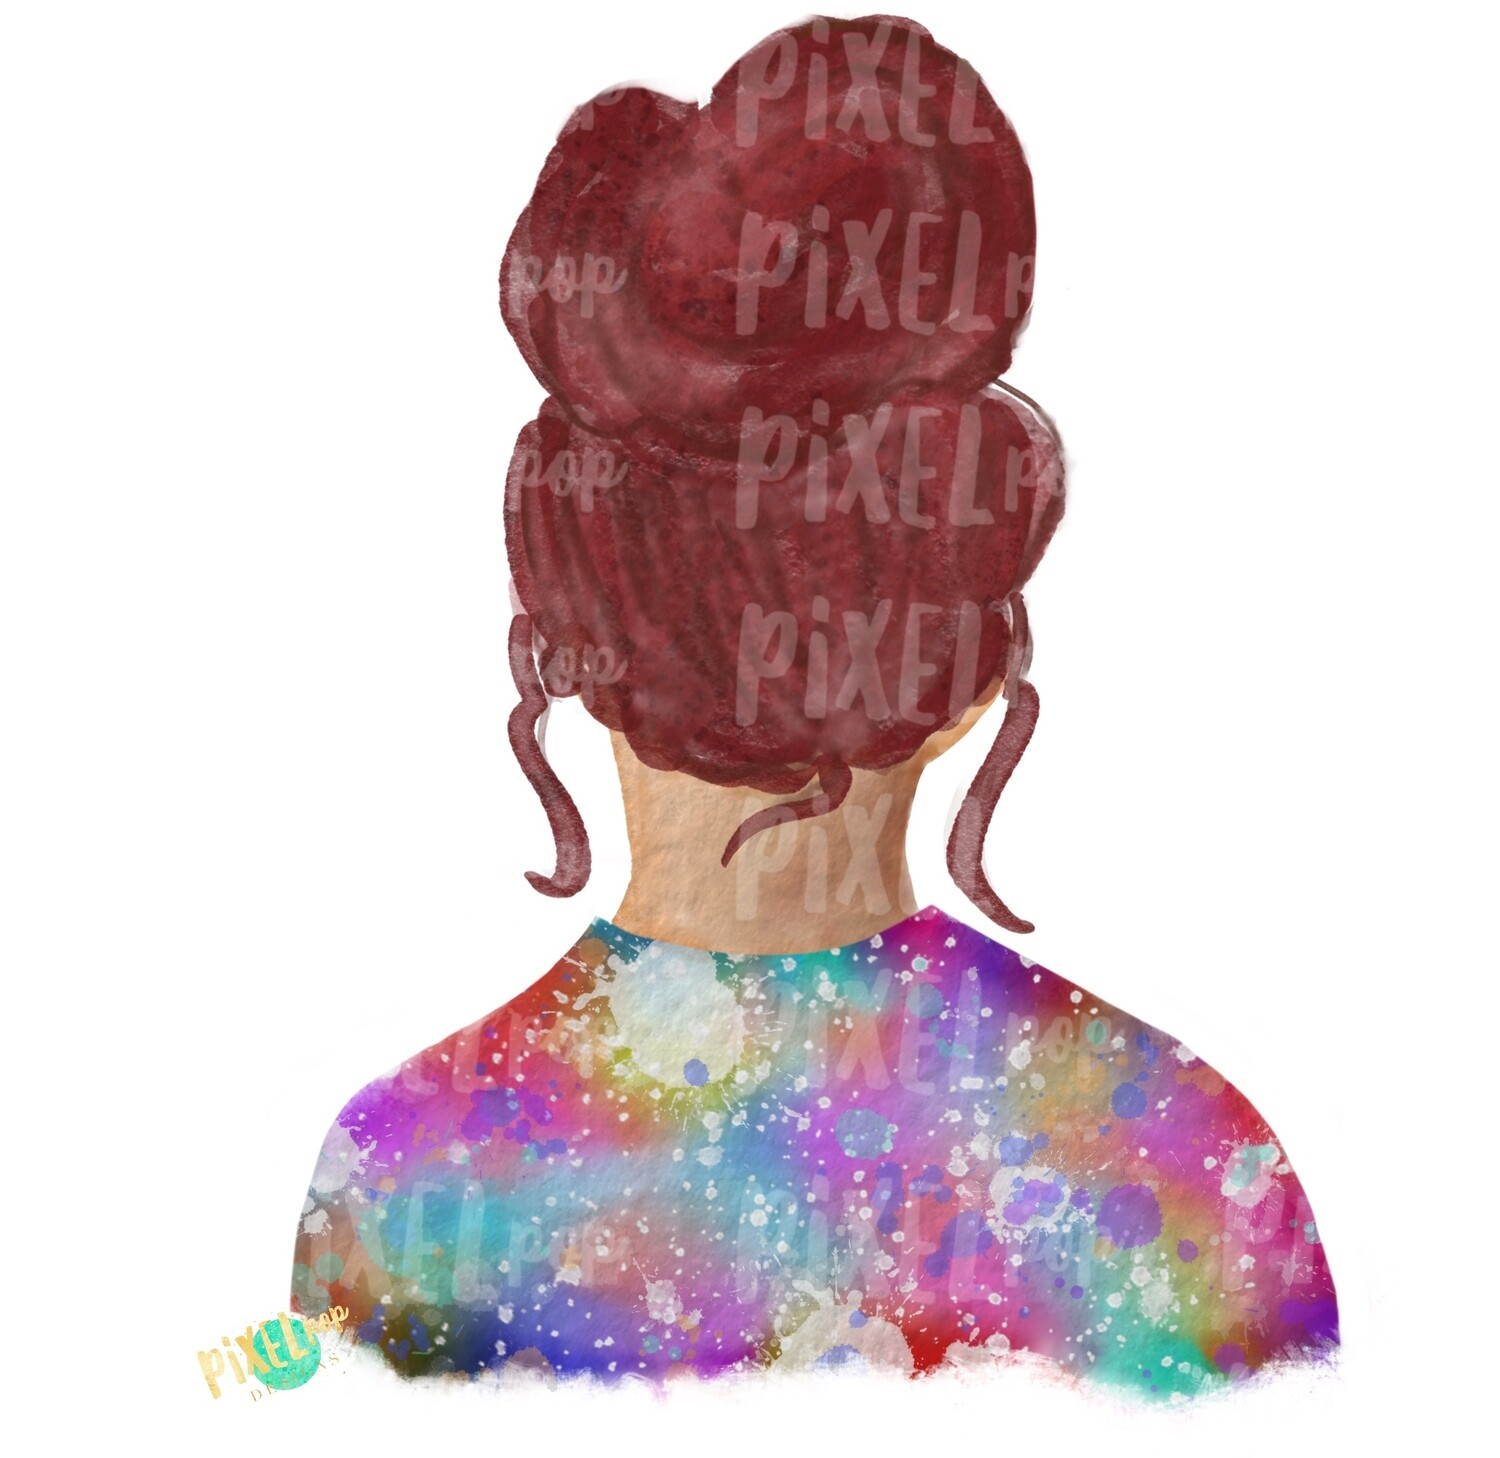 Bun Girl Red Tie Dye Shirt Sublimation PNG | Sublimation Design | Hippie Girl | Digital Download | Printable Art